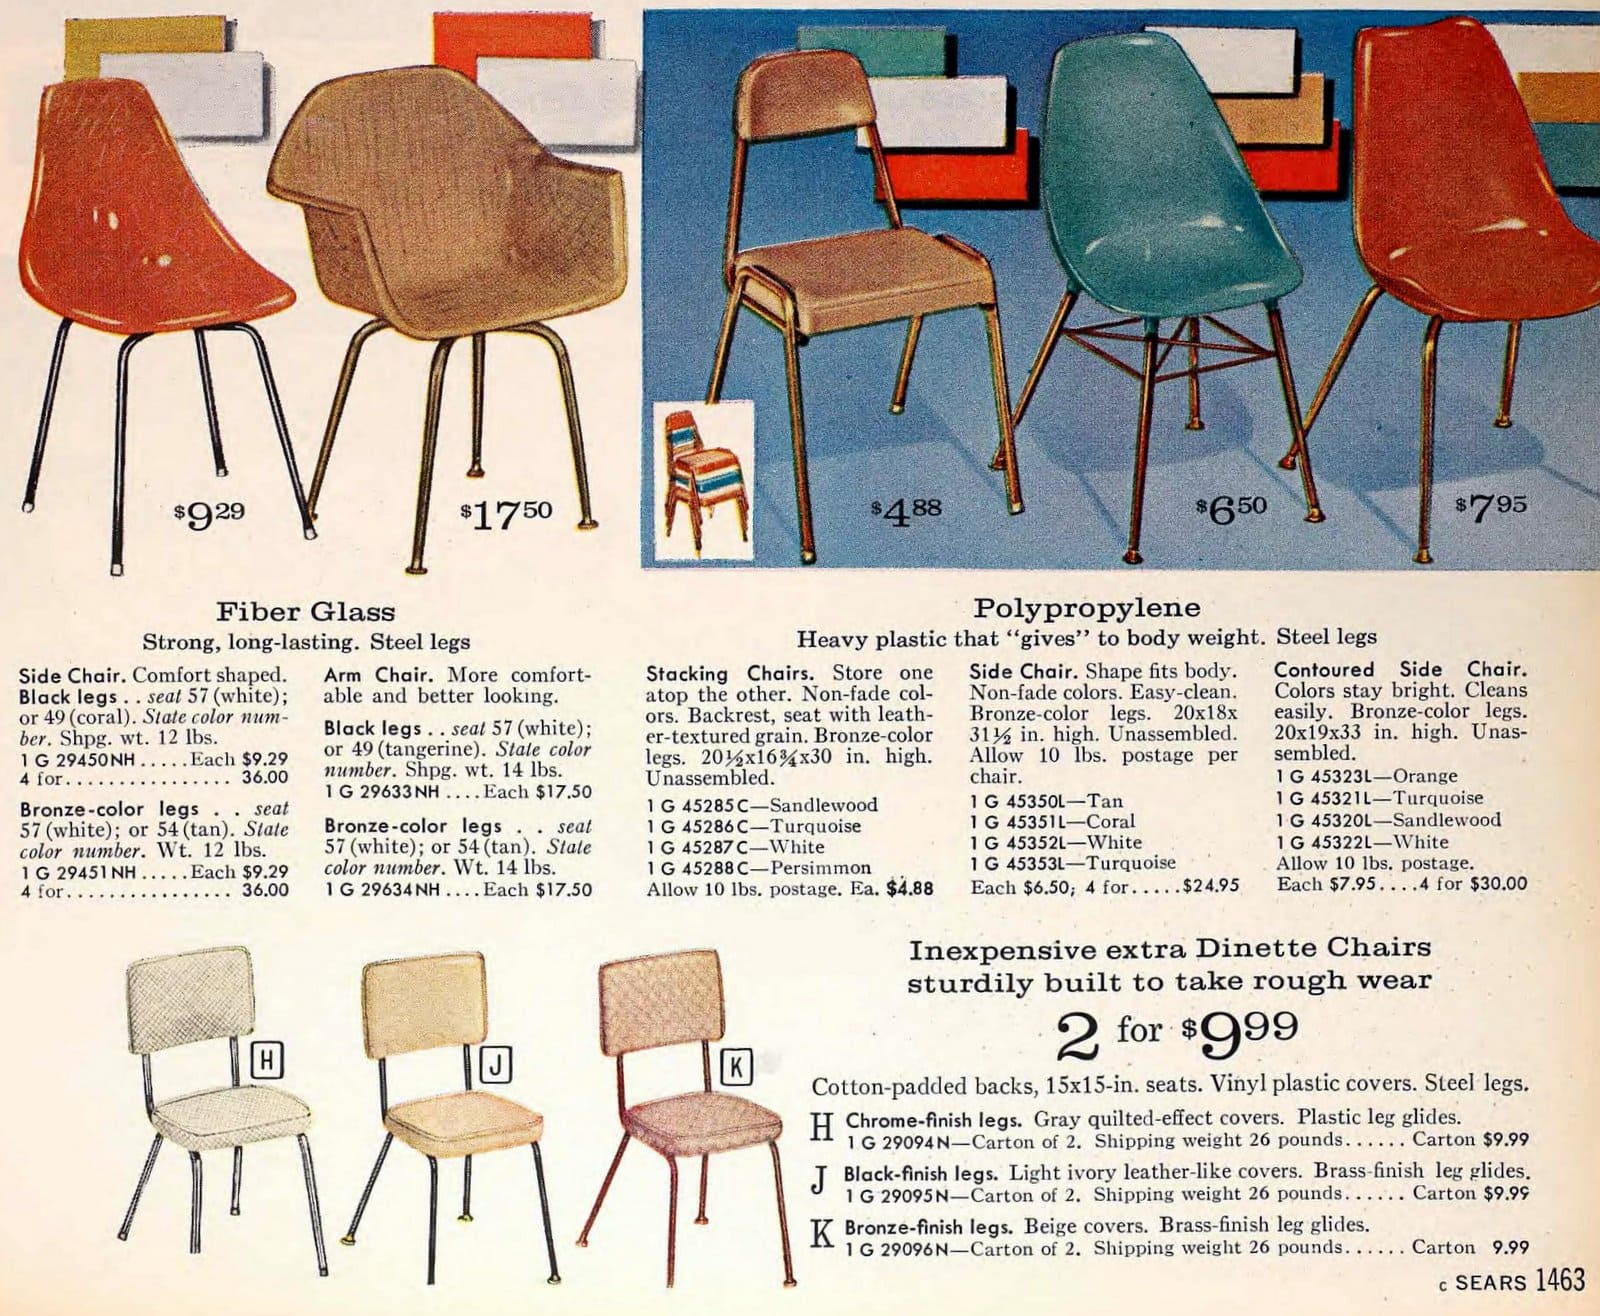 Simple retro 60s chairs from Sears (1963)